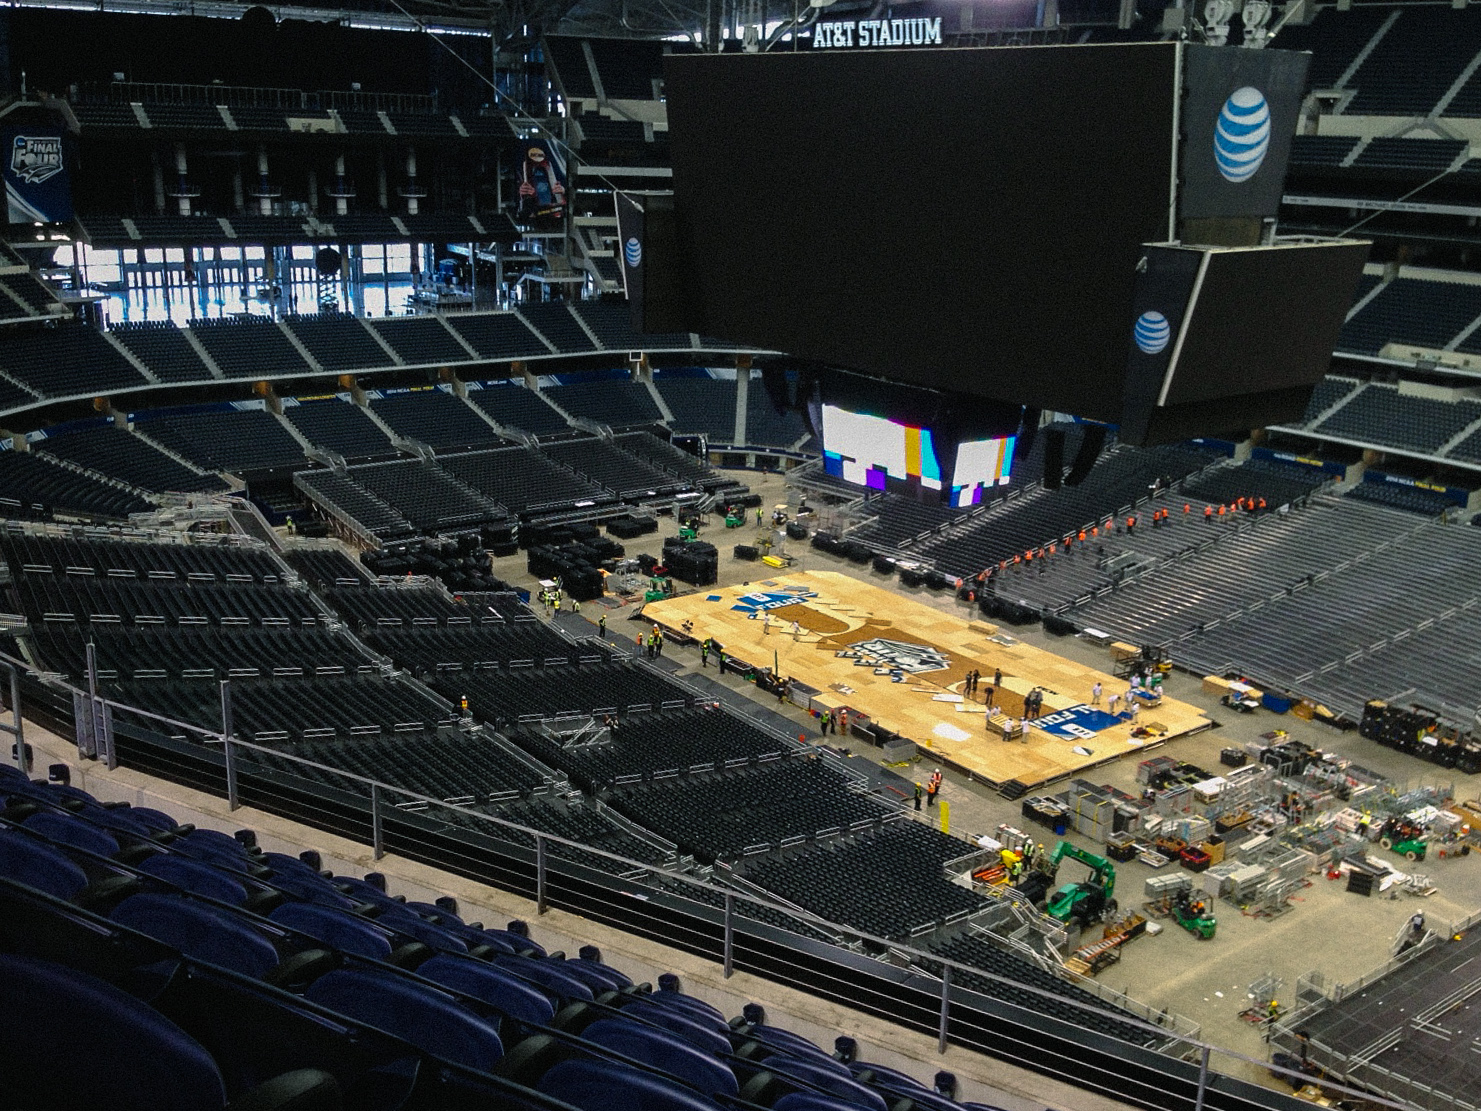 At AT&T Stadium, the Final Four floor is born.